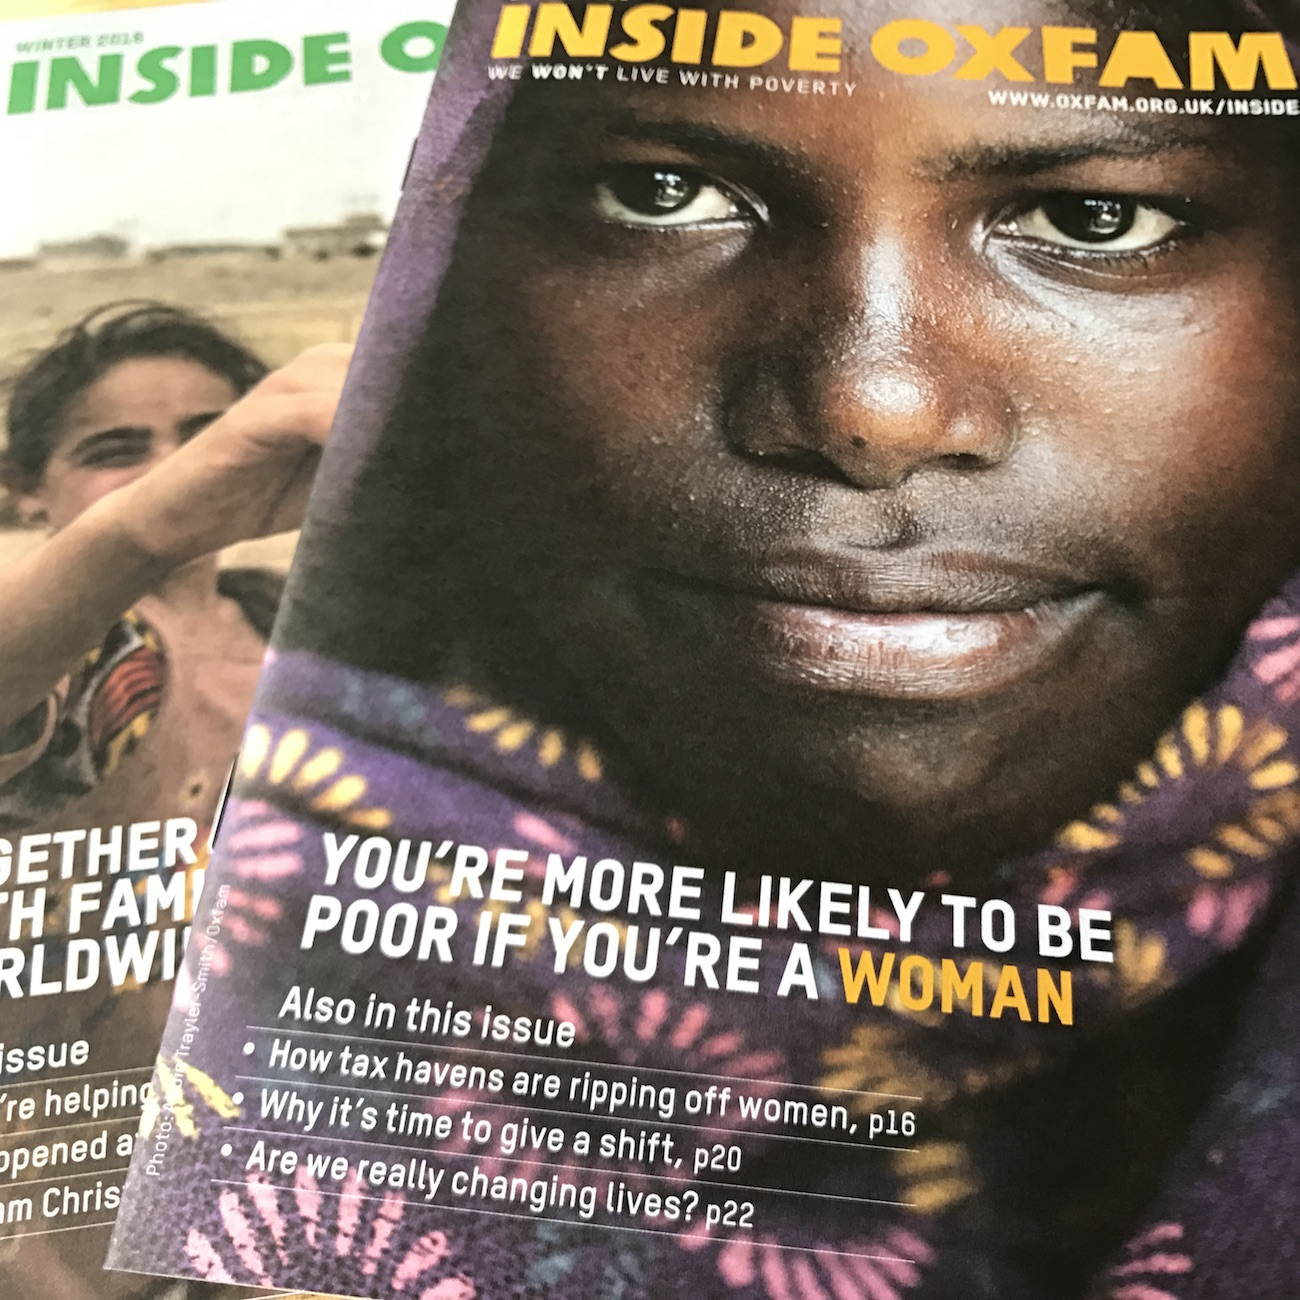 Inside Oxfam supporter magazine covers